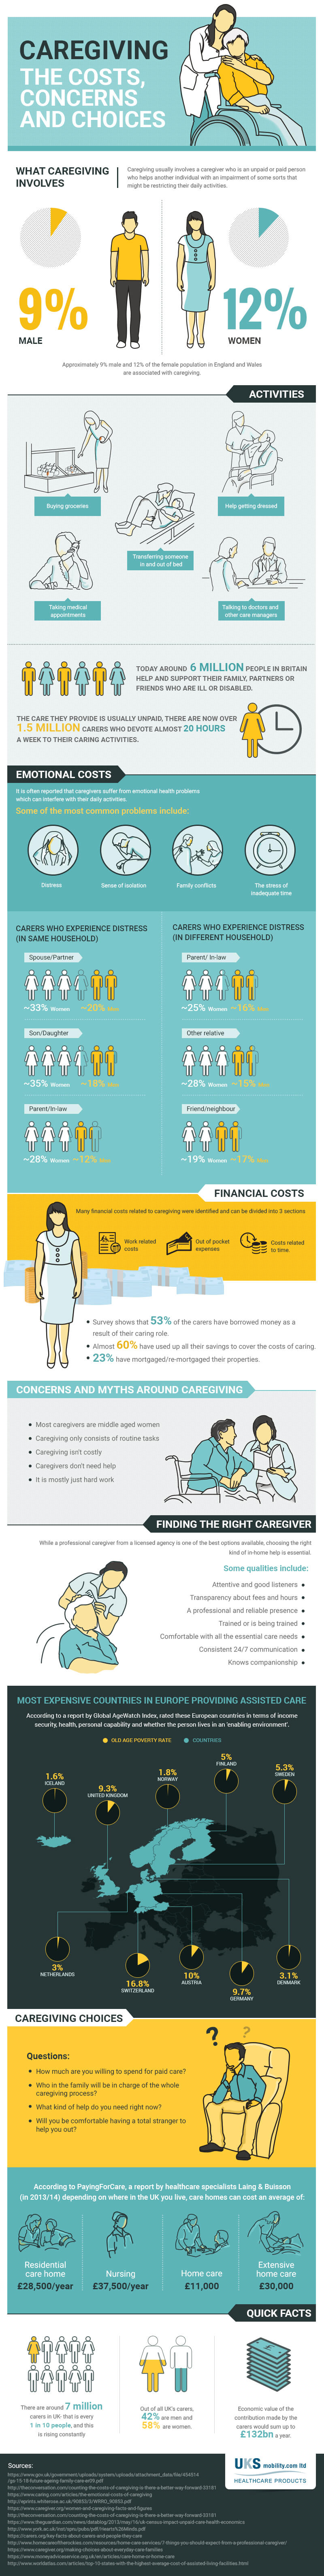 Caregiving costs, concerns and choices